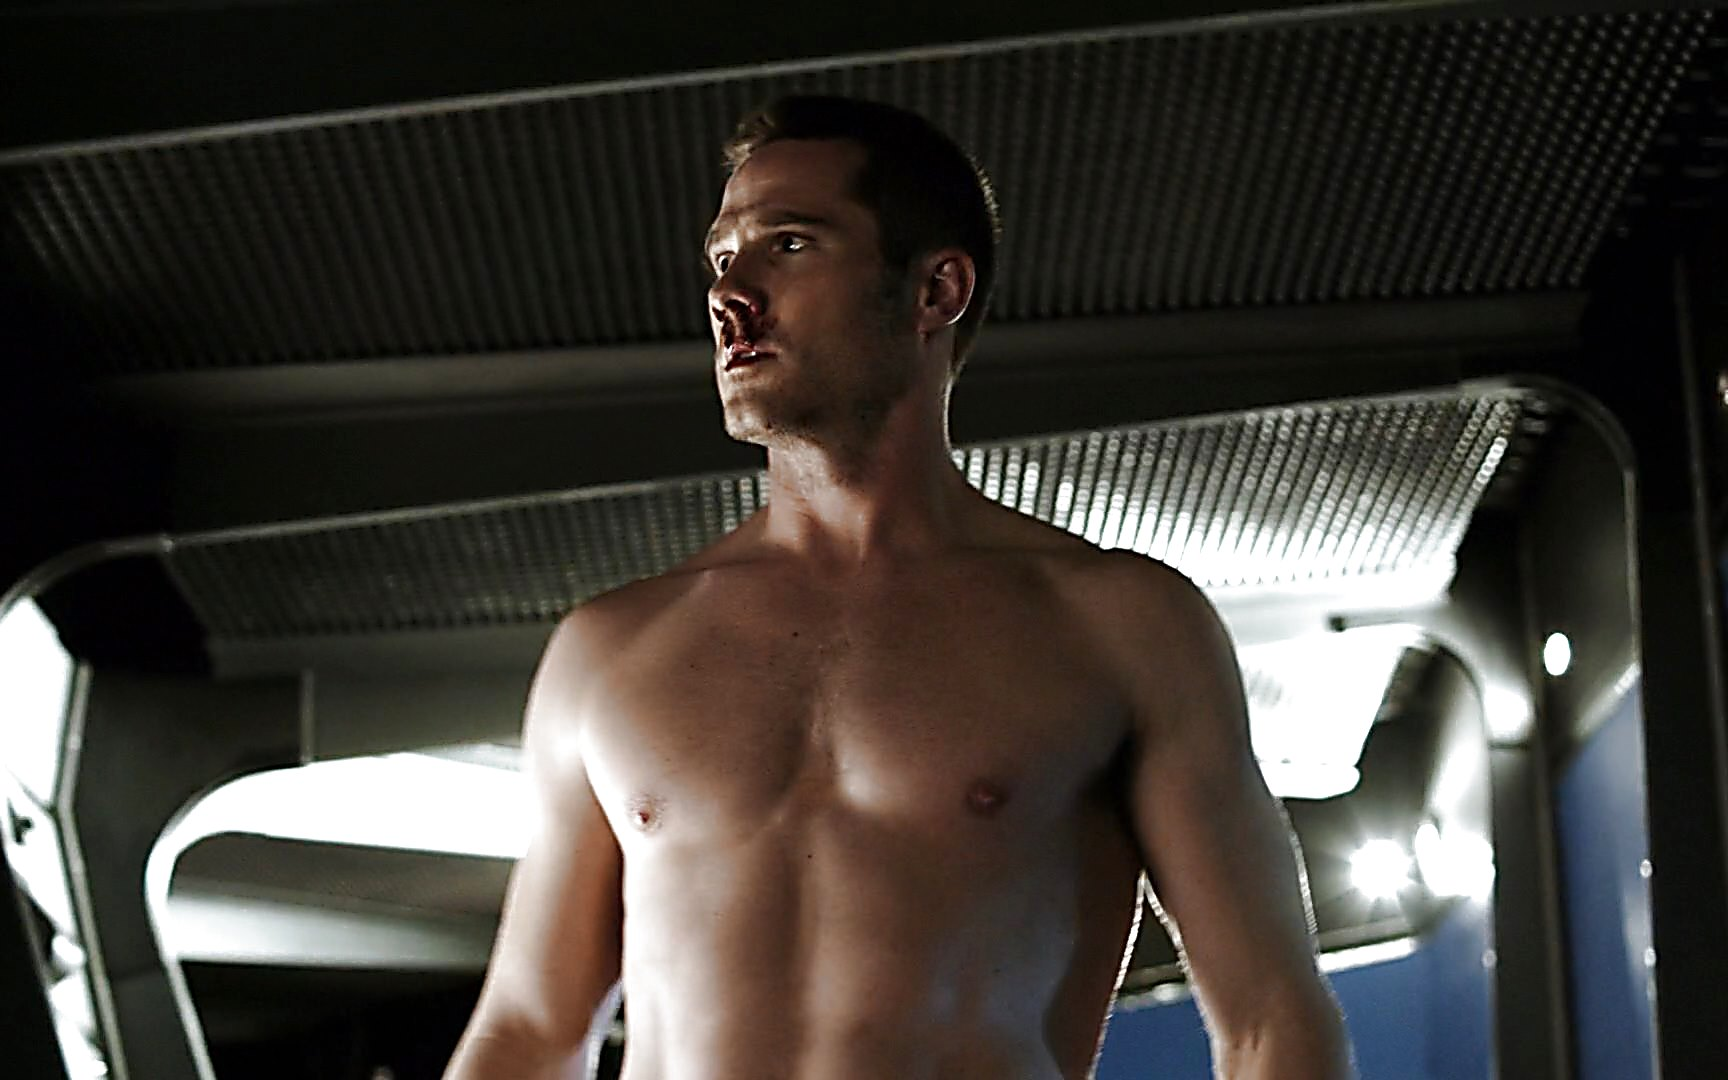 Luke Macfarlane sexy shirtless scene August 1, 2015, 4pm